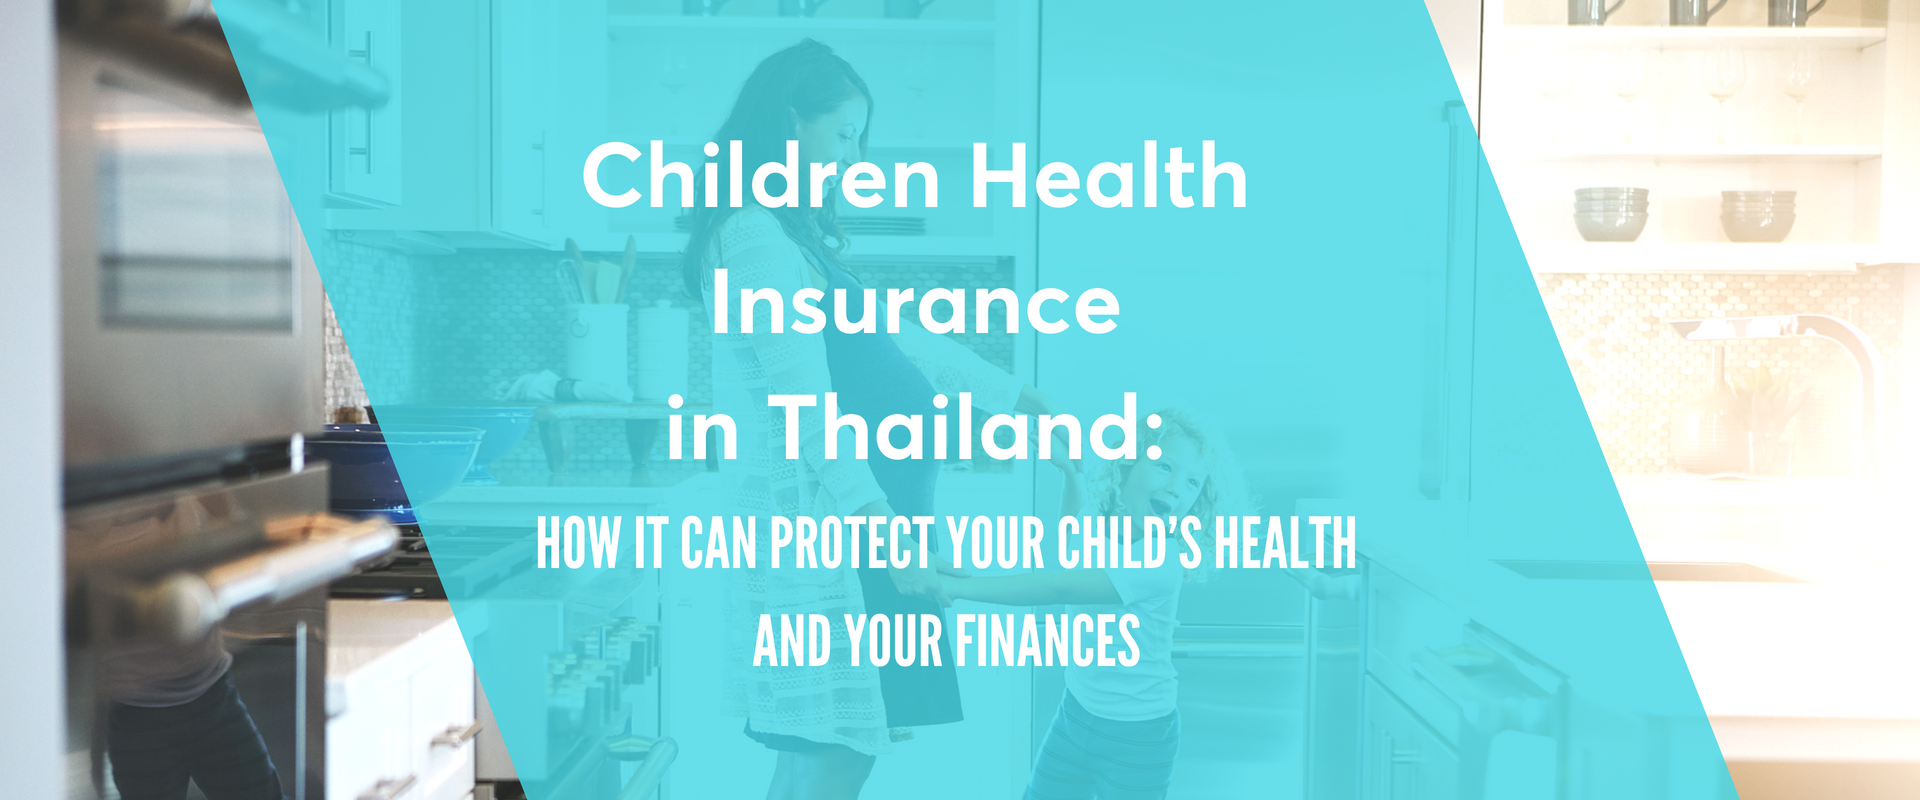 Children health insurance in Thailand: Protect your child and your finances